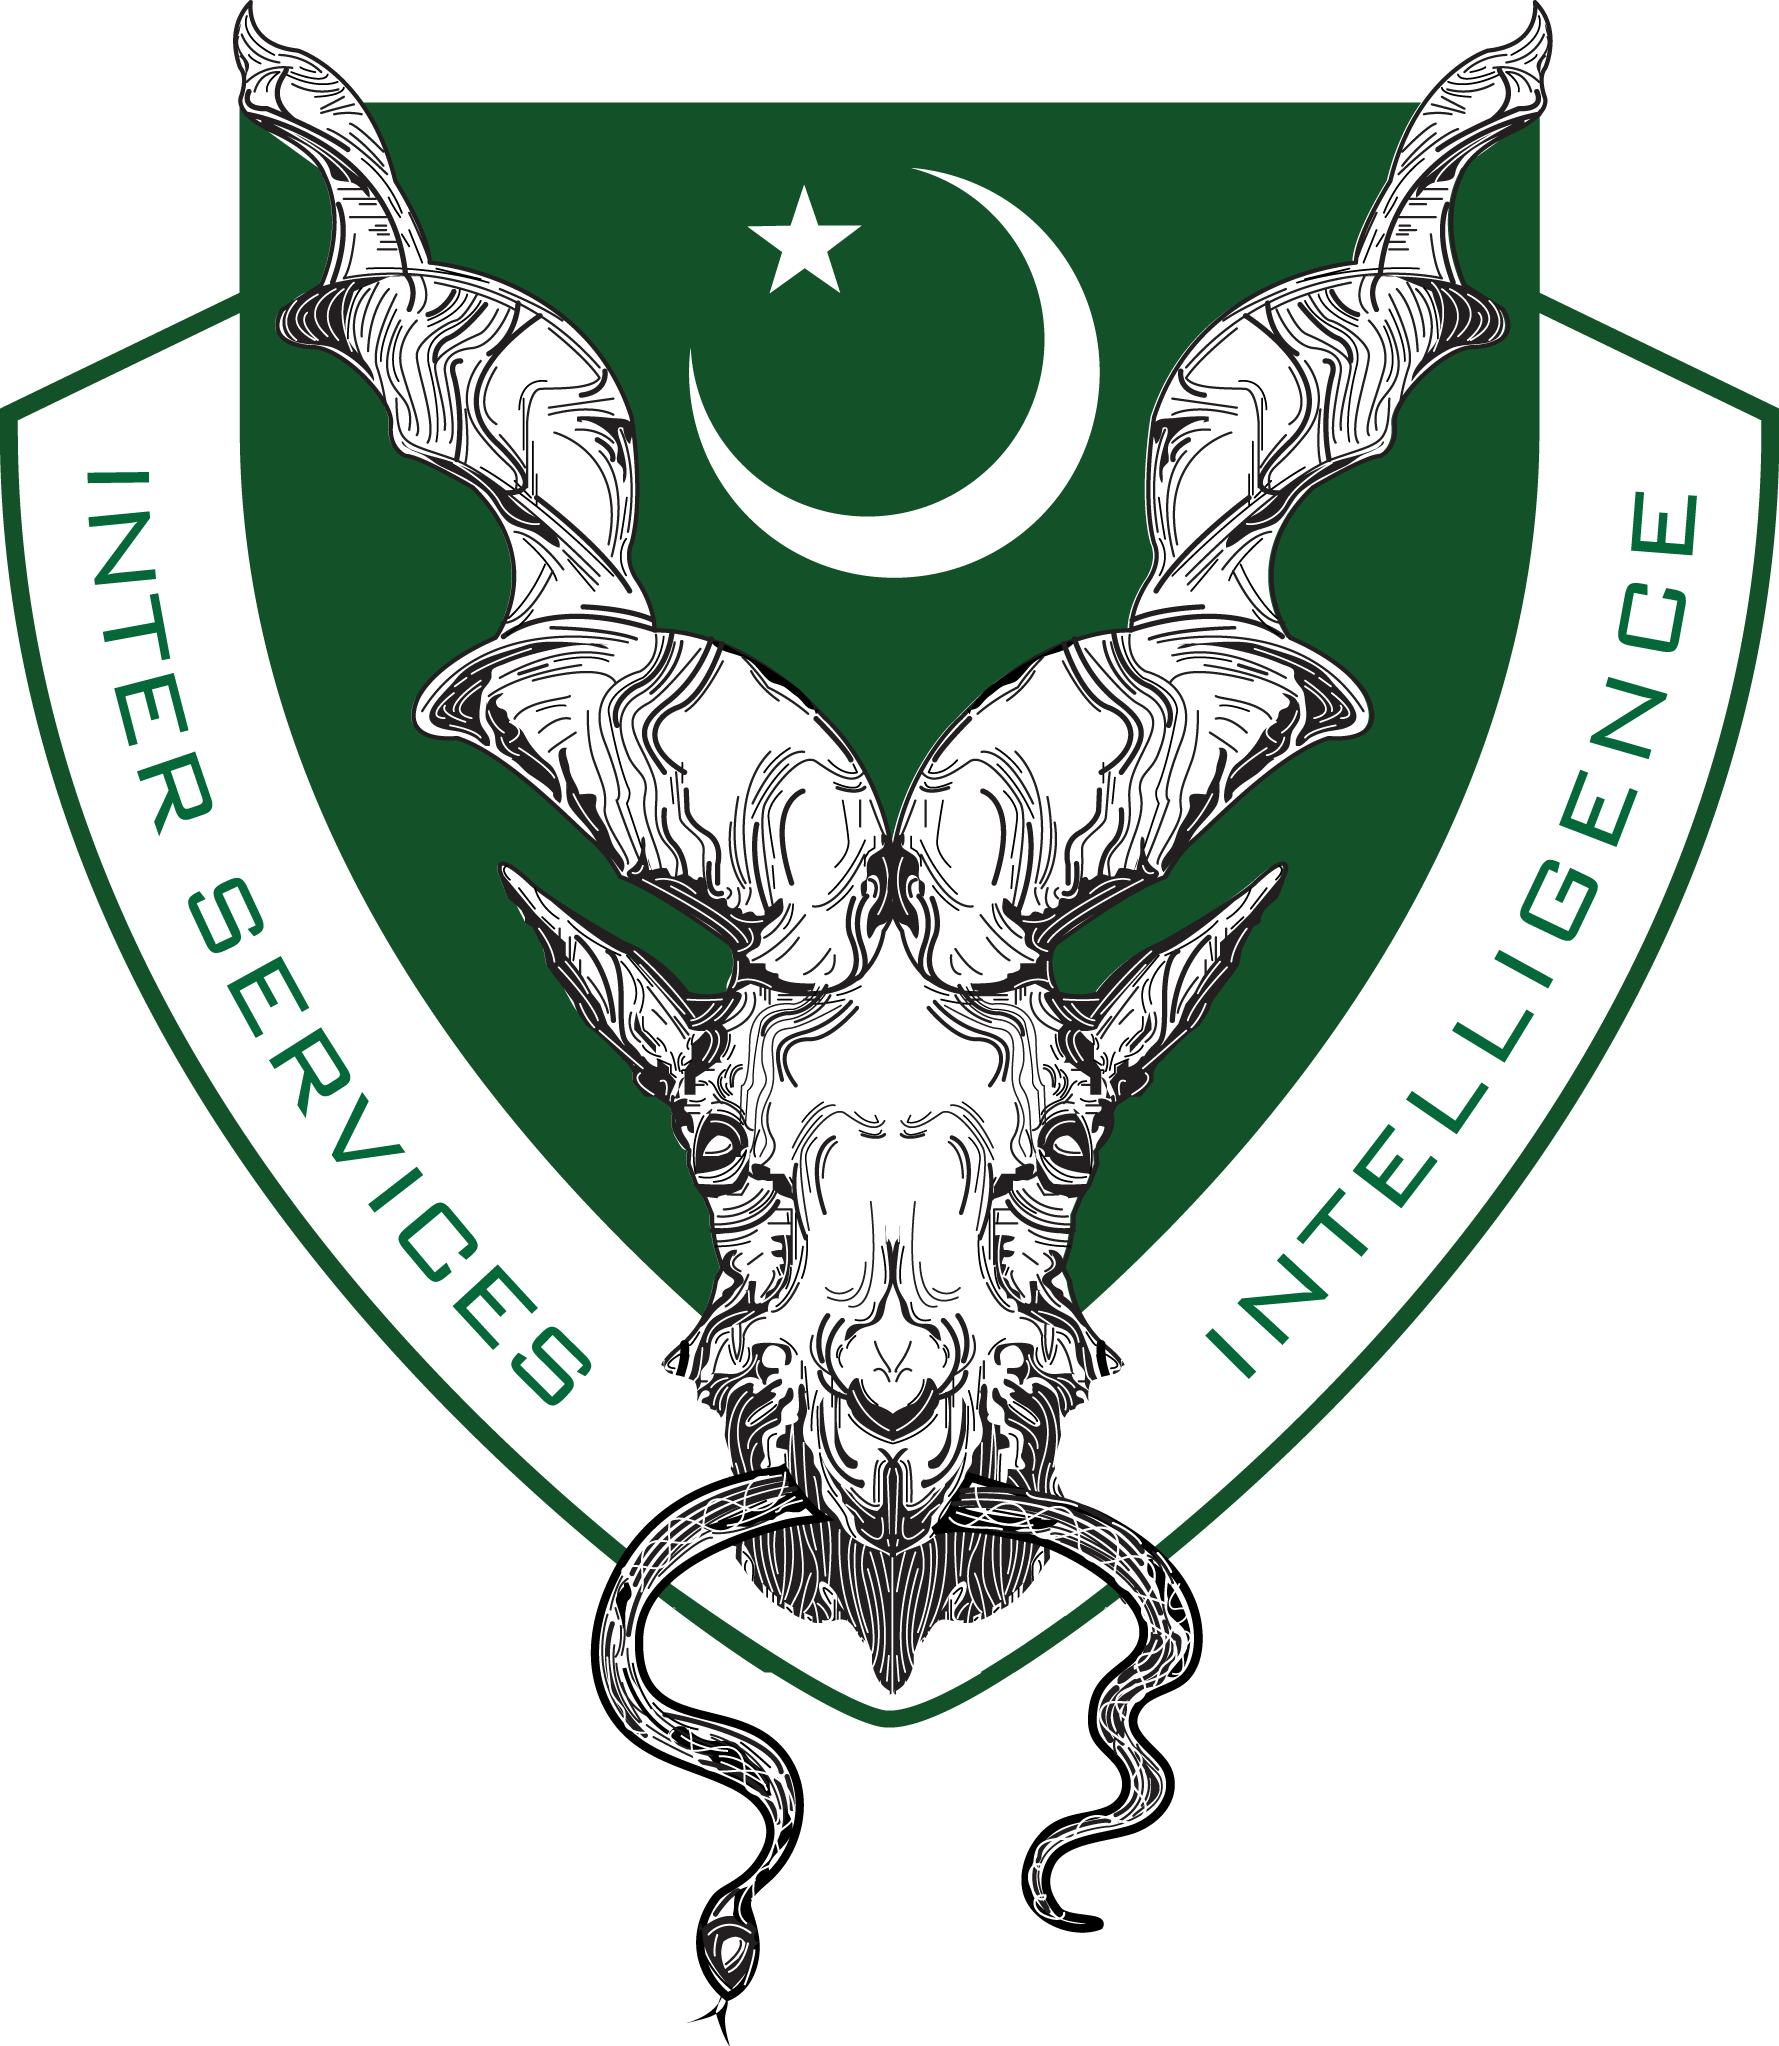 The Afghan Government Has Signed An Agreement With Pakistans Military Intelligence Inter Services ISI On Mutual Cooperation To Fight